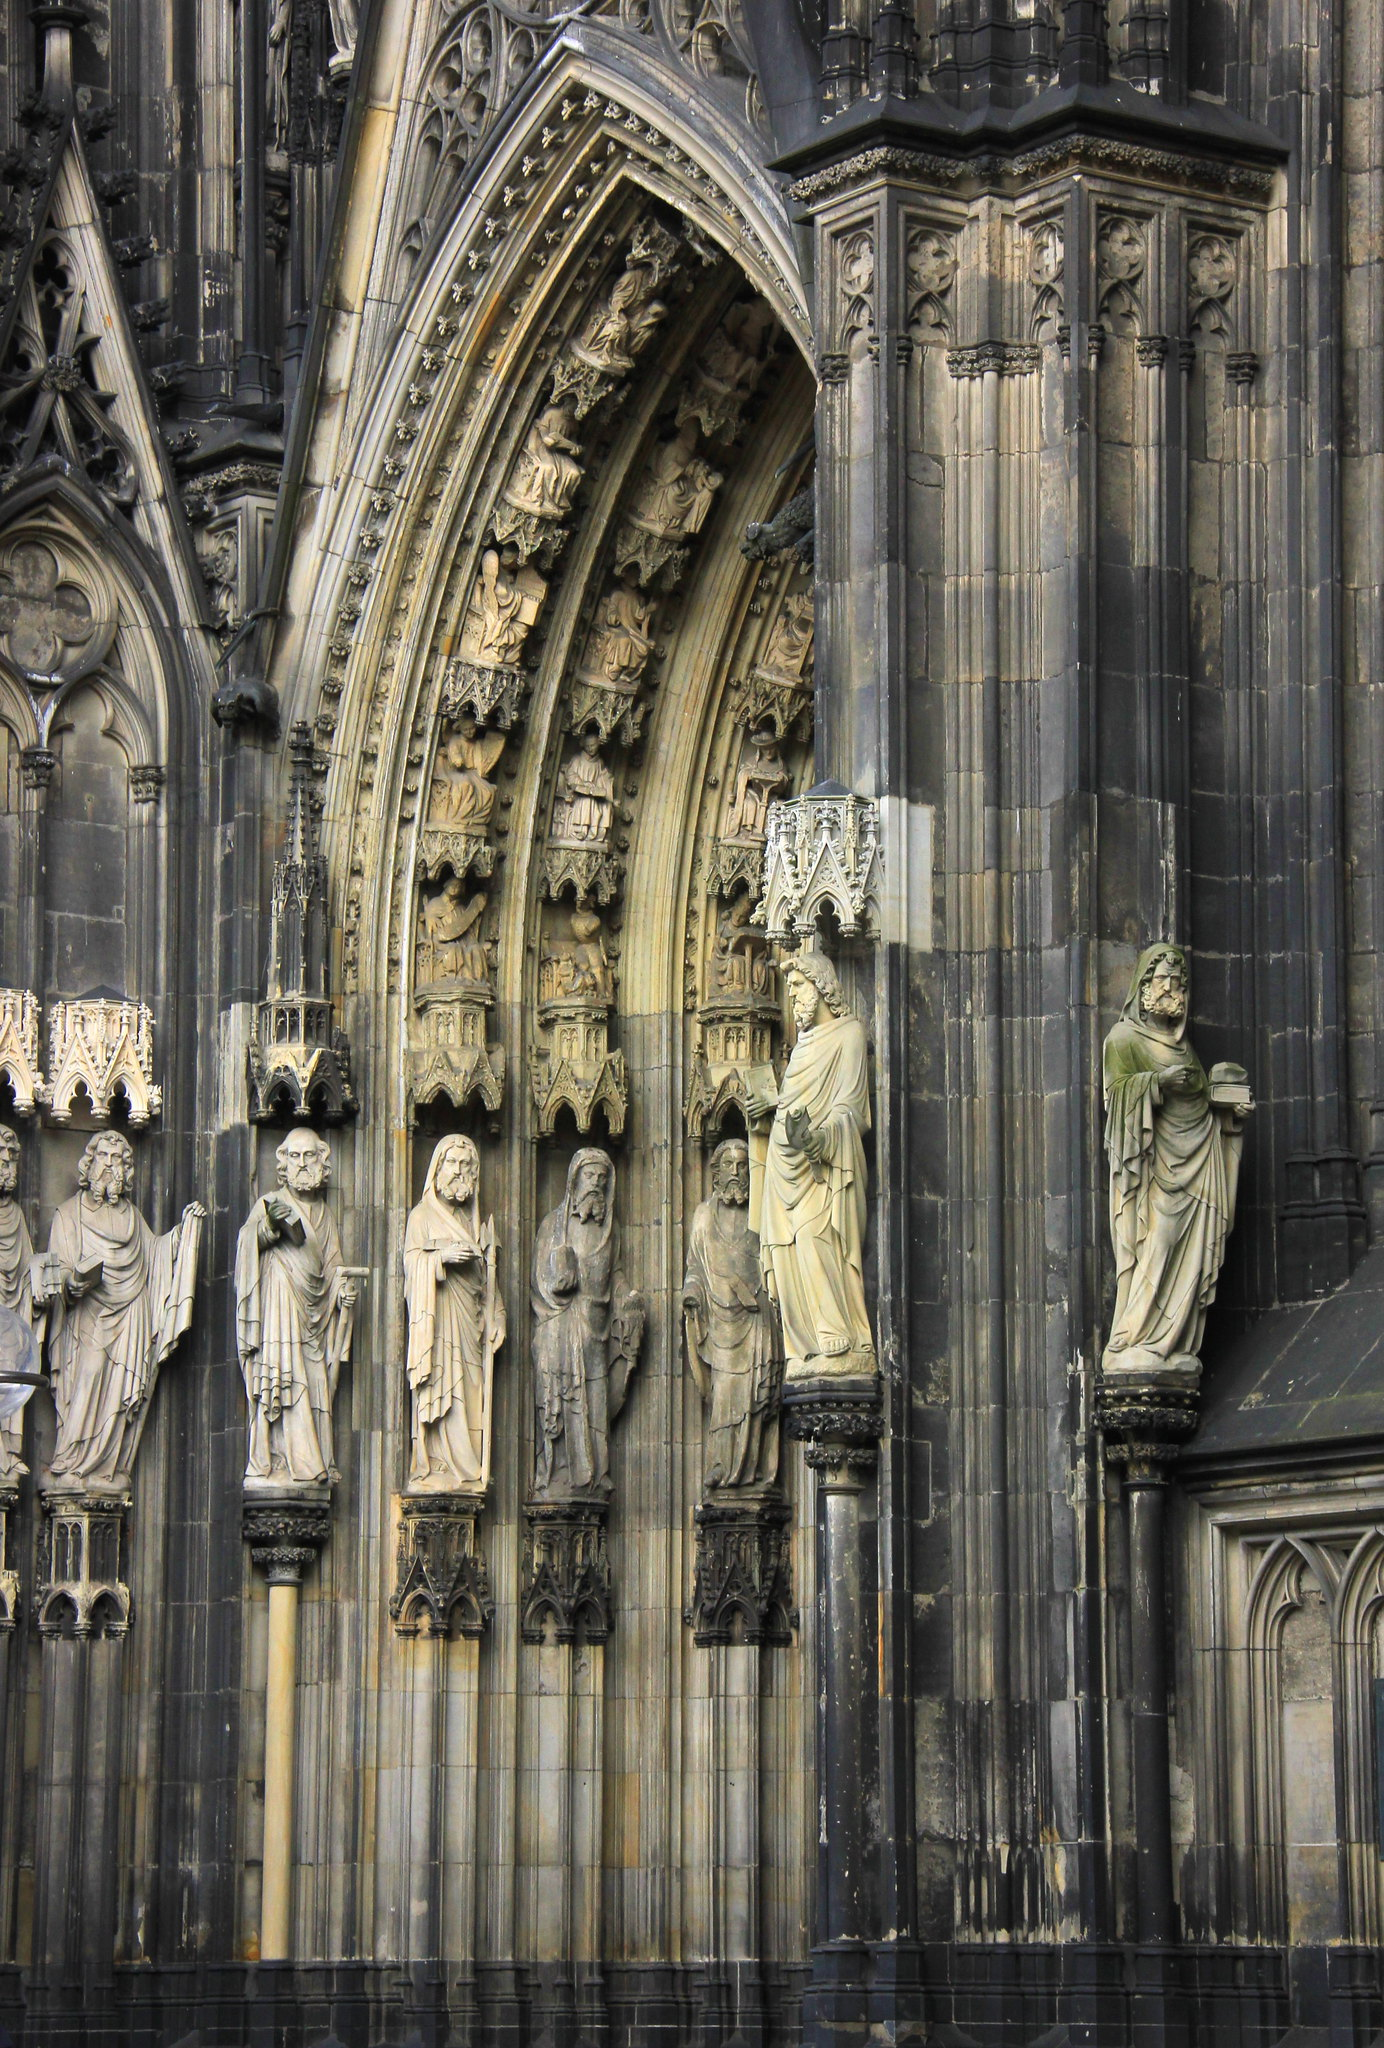 The stunning doorways of the Cologne Cathedral